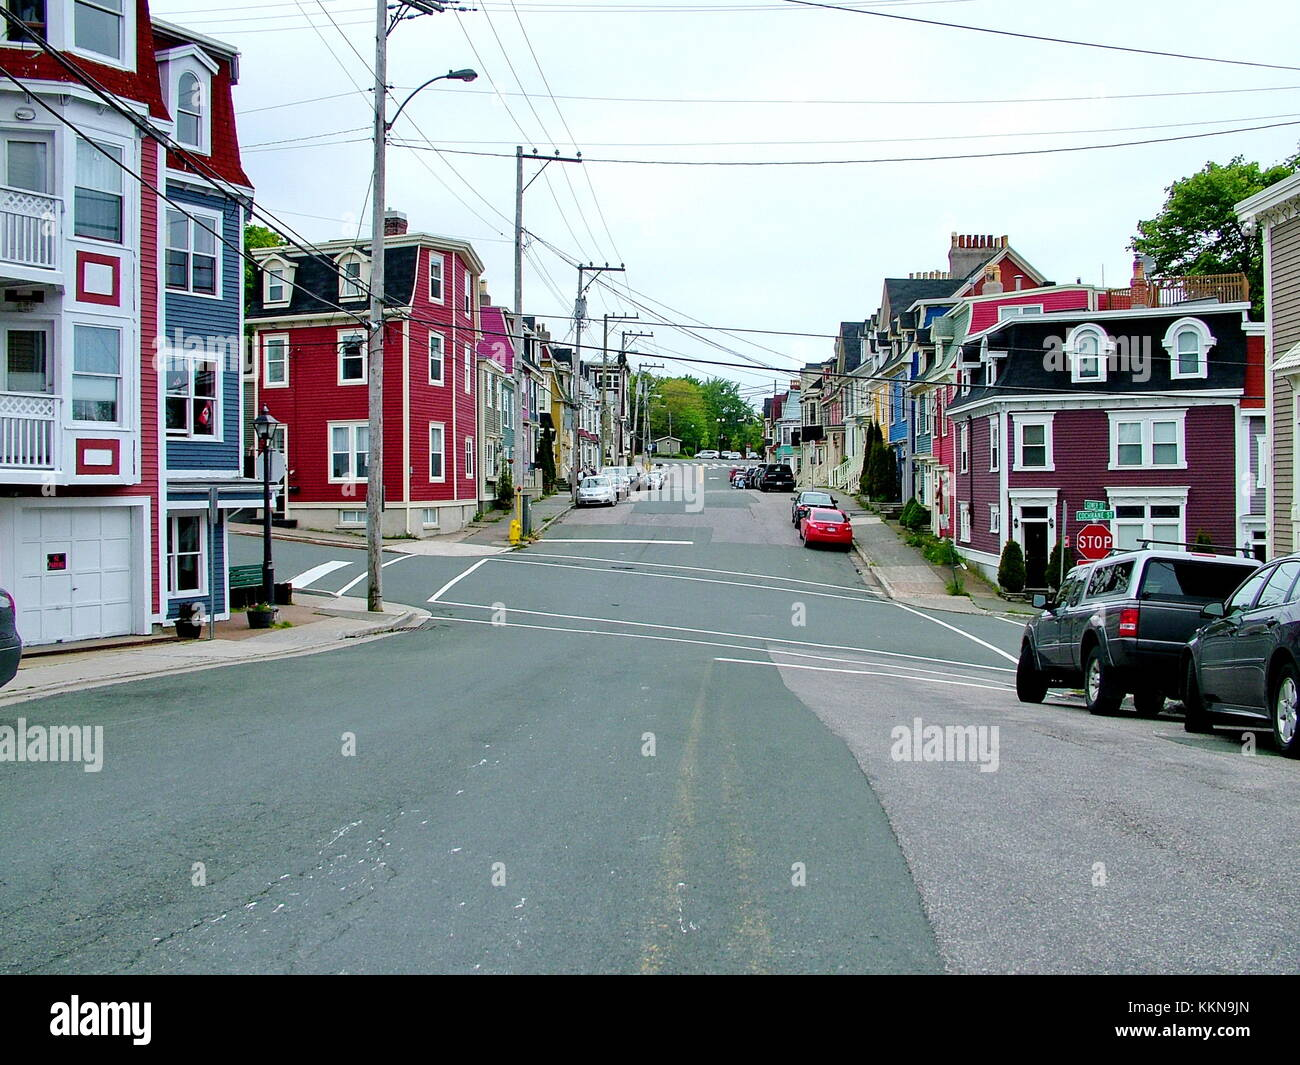 Colorful houses in St. John's, Newfoundland, Canada - Stock Image